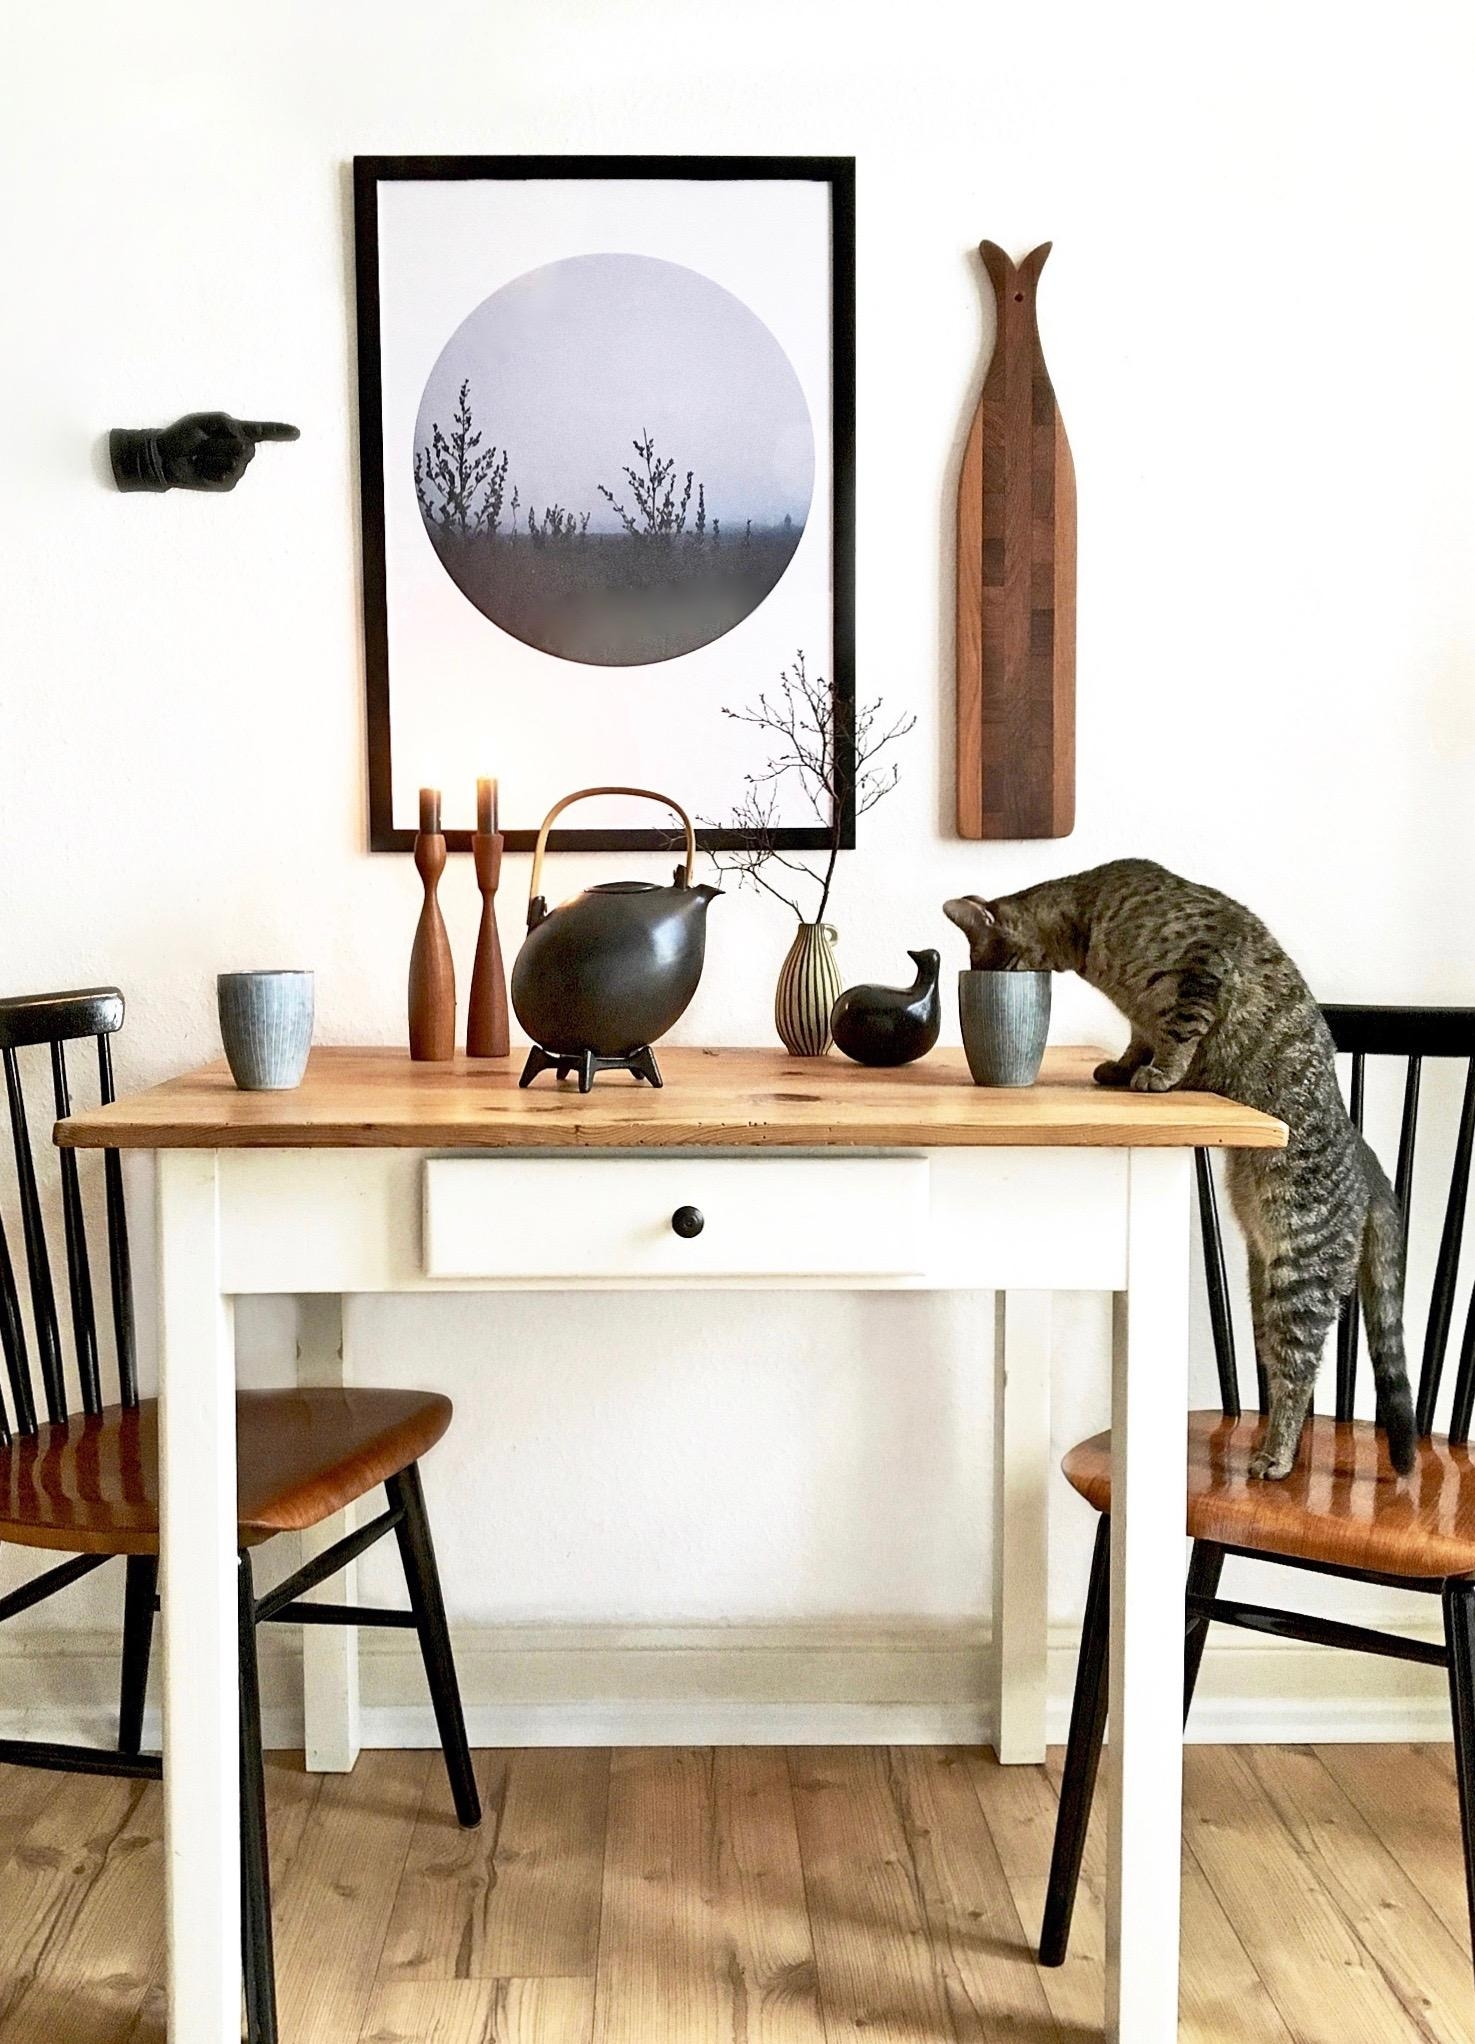 Coffee  time with cat and our new poster  kueche etsyshop altbauwohnung poster midcentury katzen  07aed252 00af 43a1 8107 0fa5ef0477d8